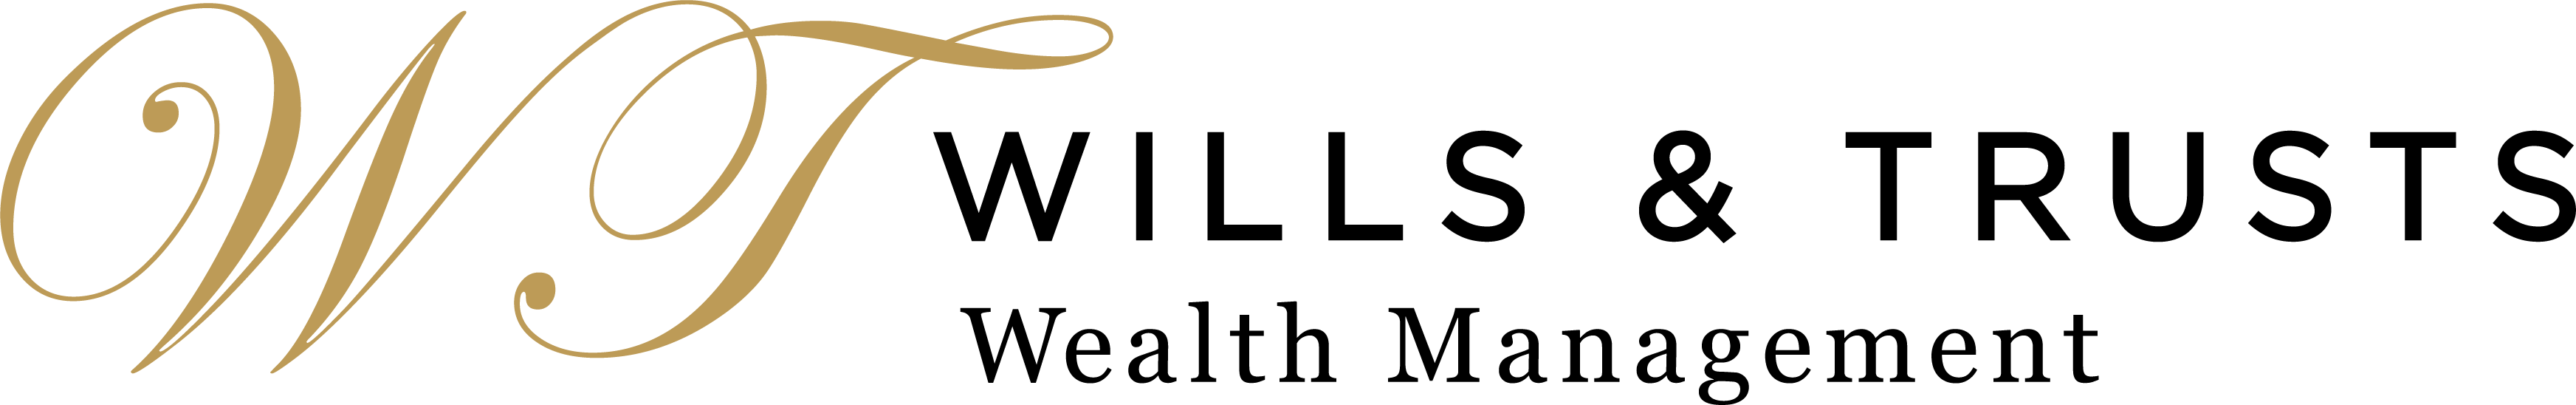 Wills & Trusts Wealth Management